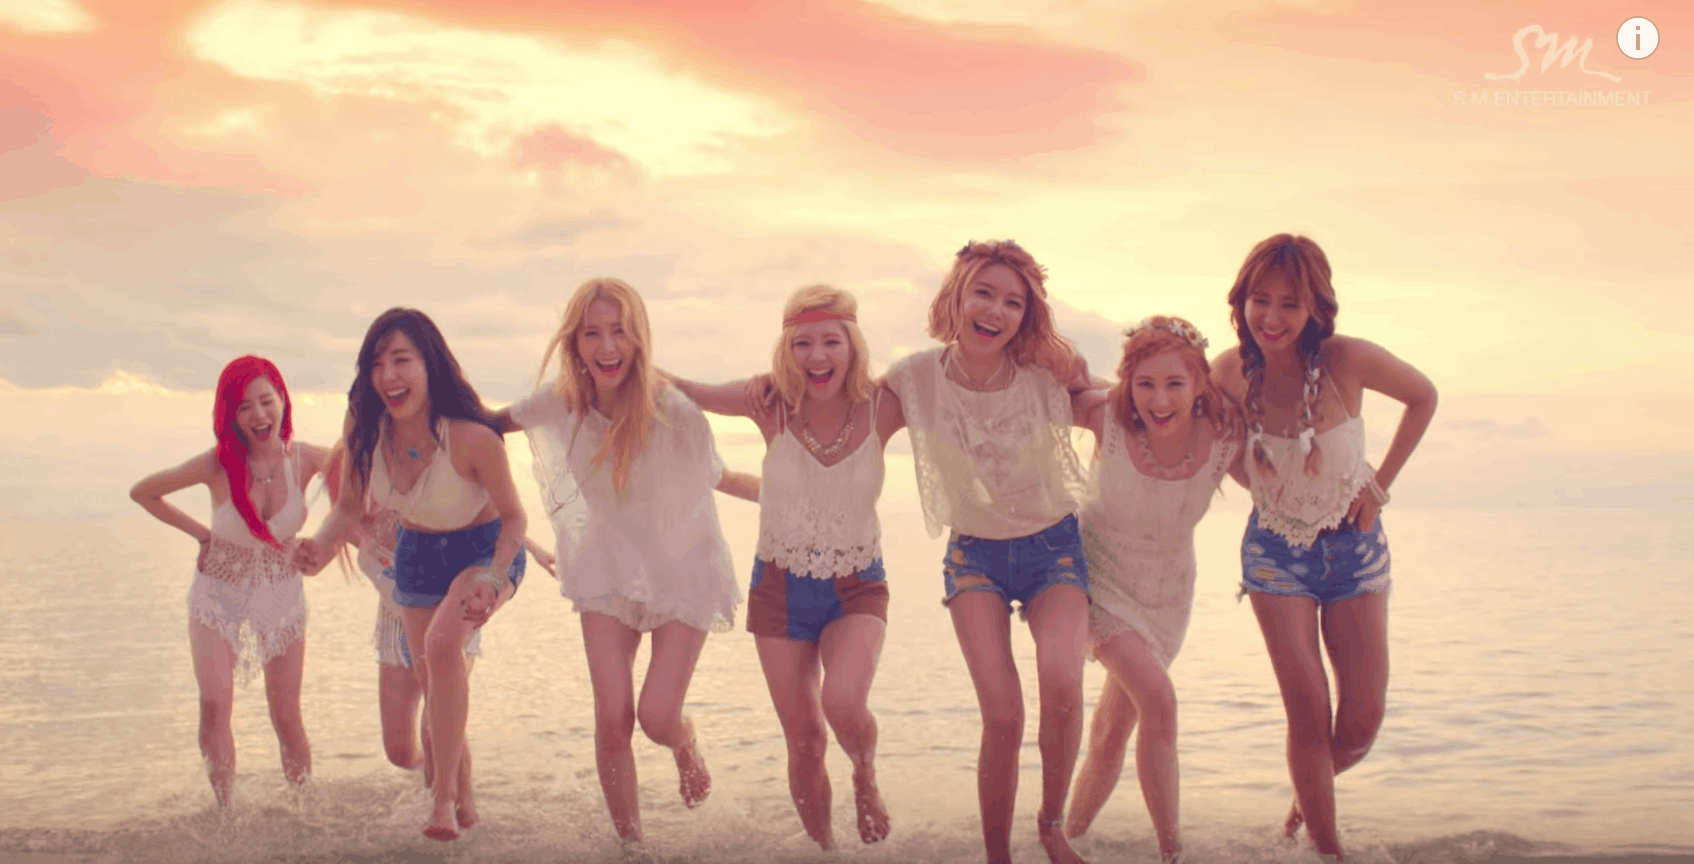 Girls Generation Party Music Video - a picture of the girls wearing shorts and white tops at the beach